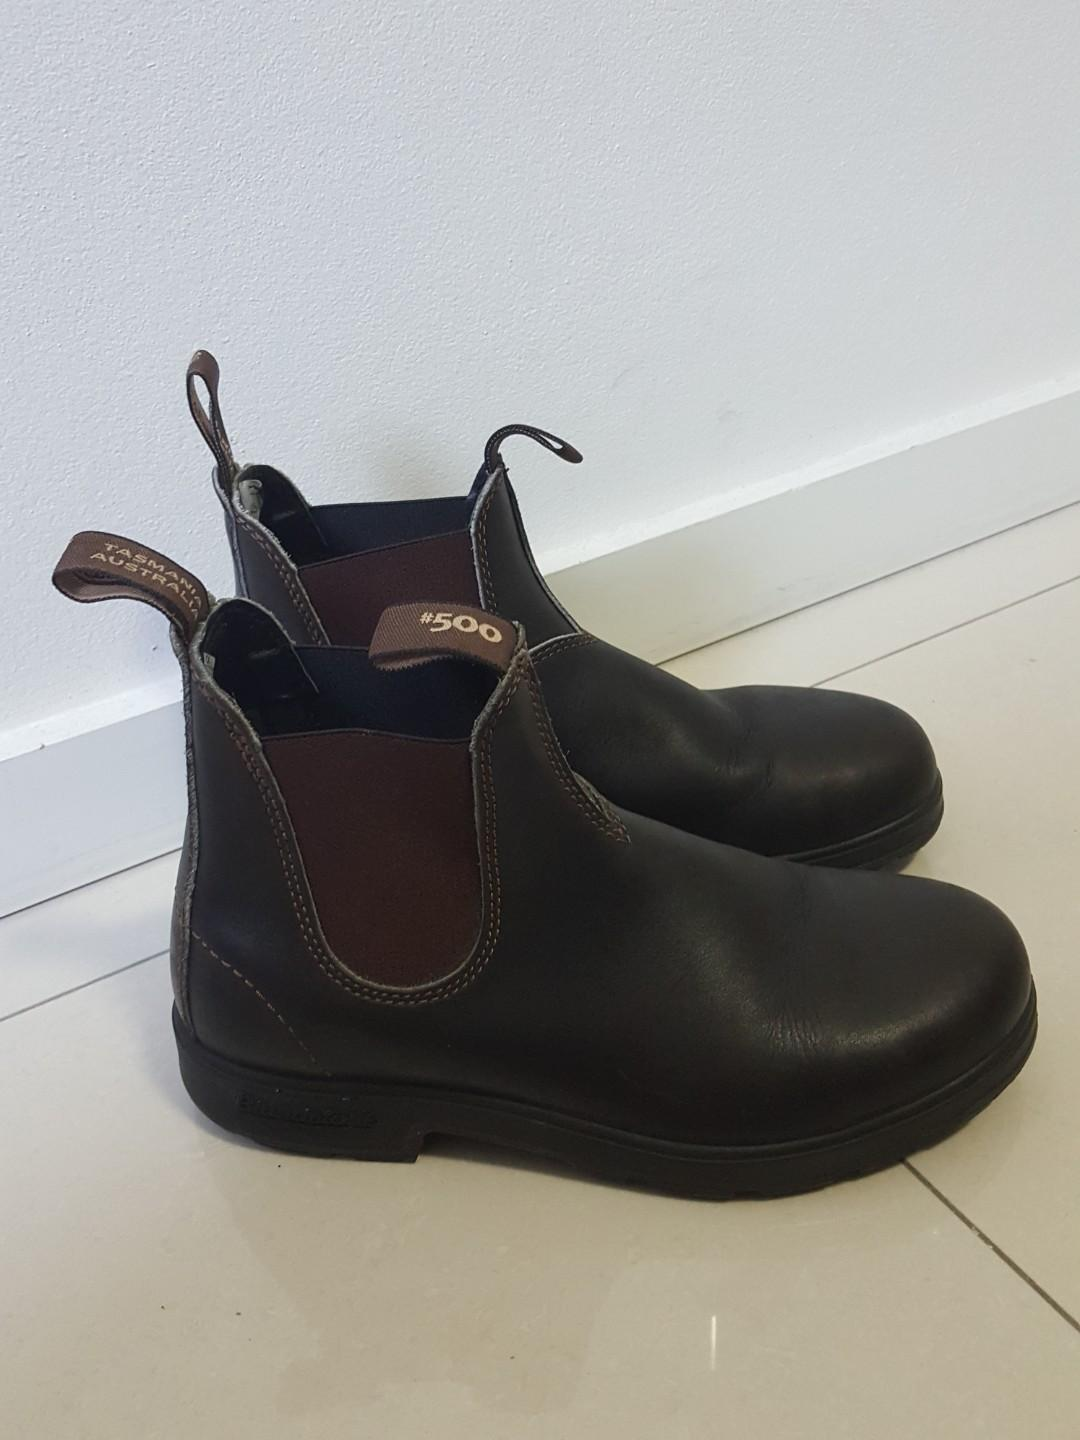 Blundstone brown boots